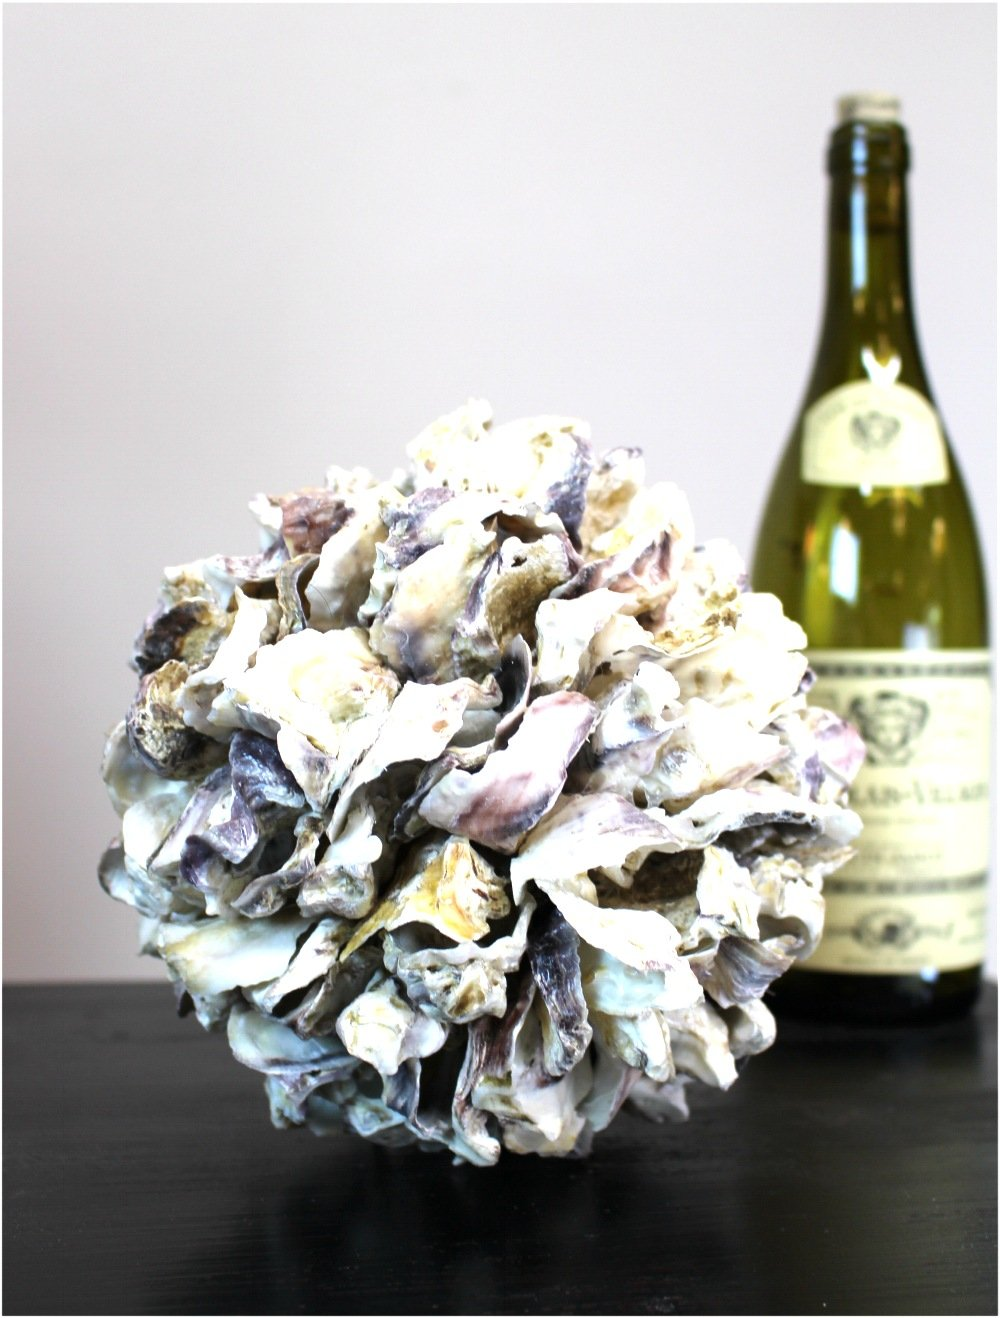 The King's Bay Oyster Shell Ball Natural Hand Made Beach Nautical Home Goods Accent 8''